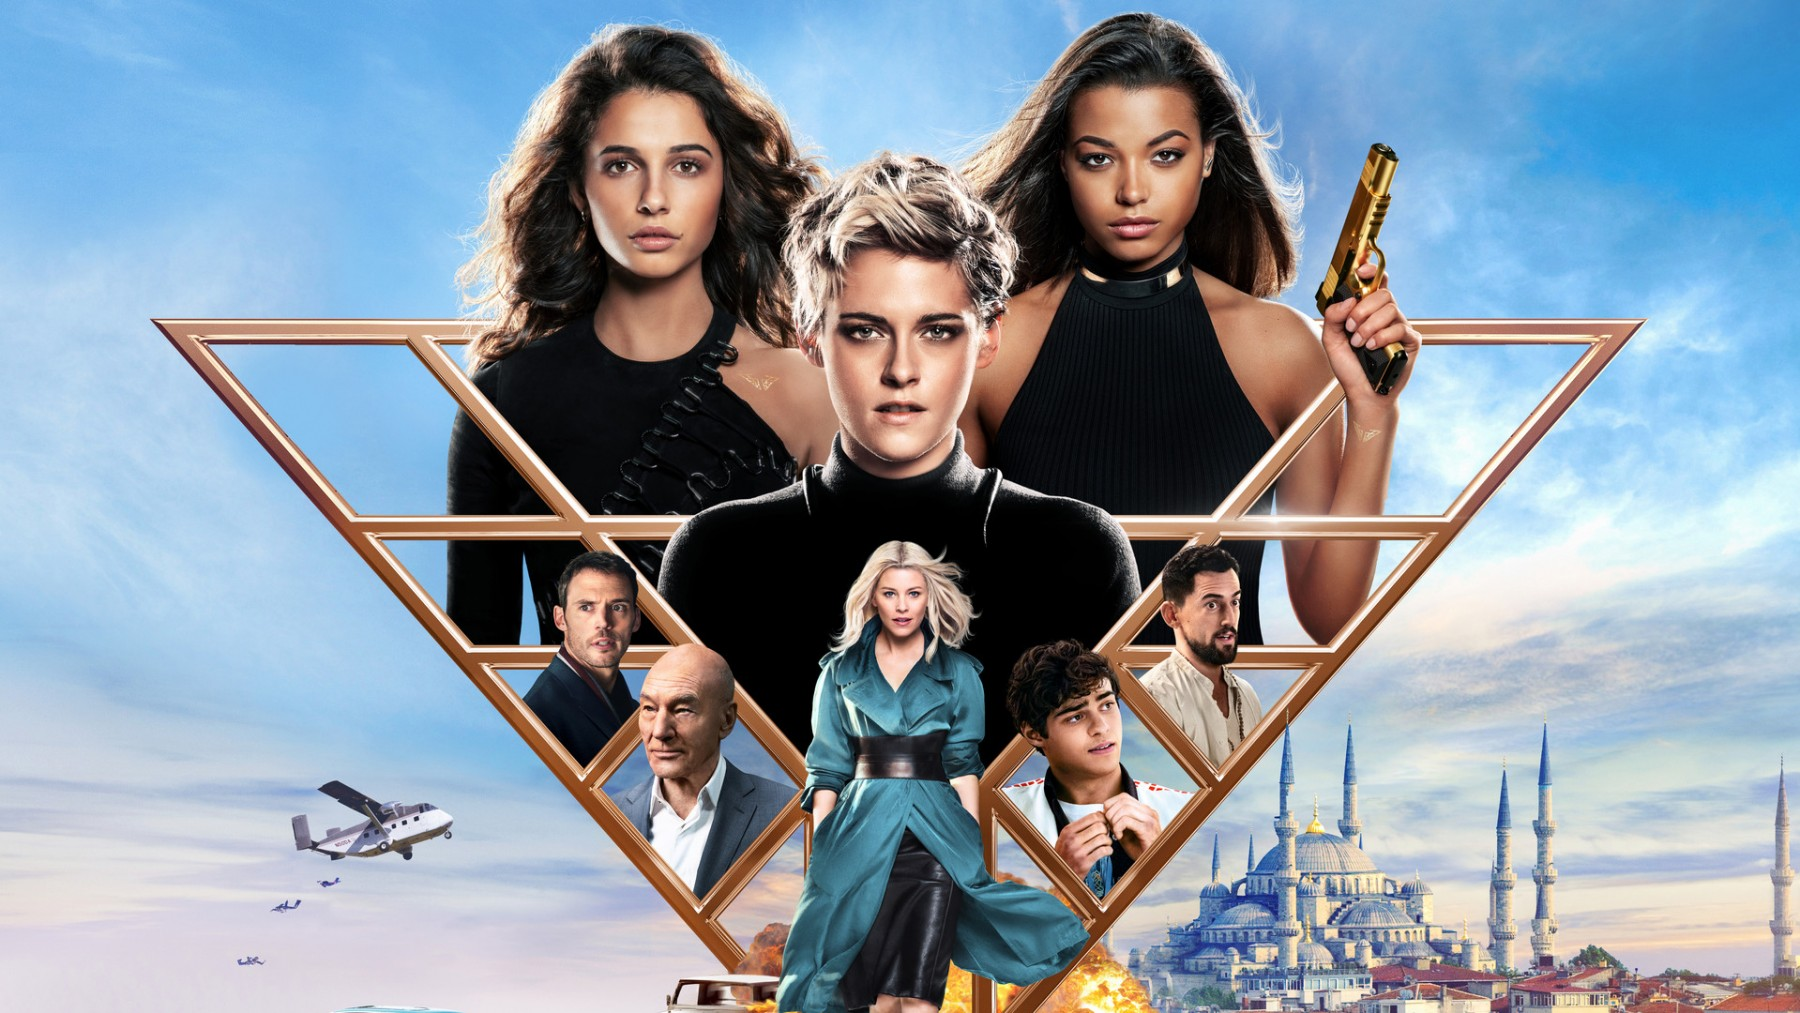 Charlie s Angels - moonrocketfilms cinema